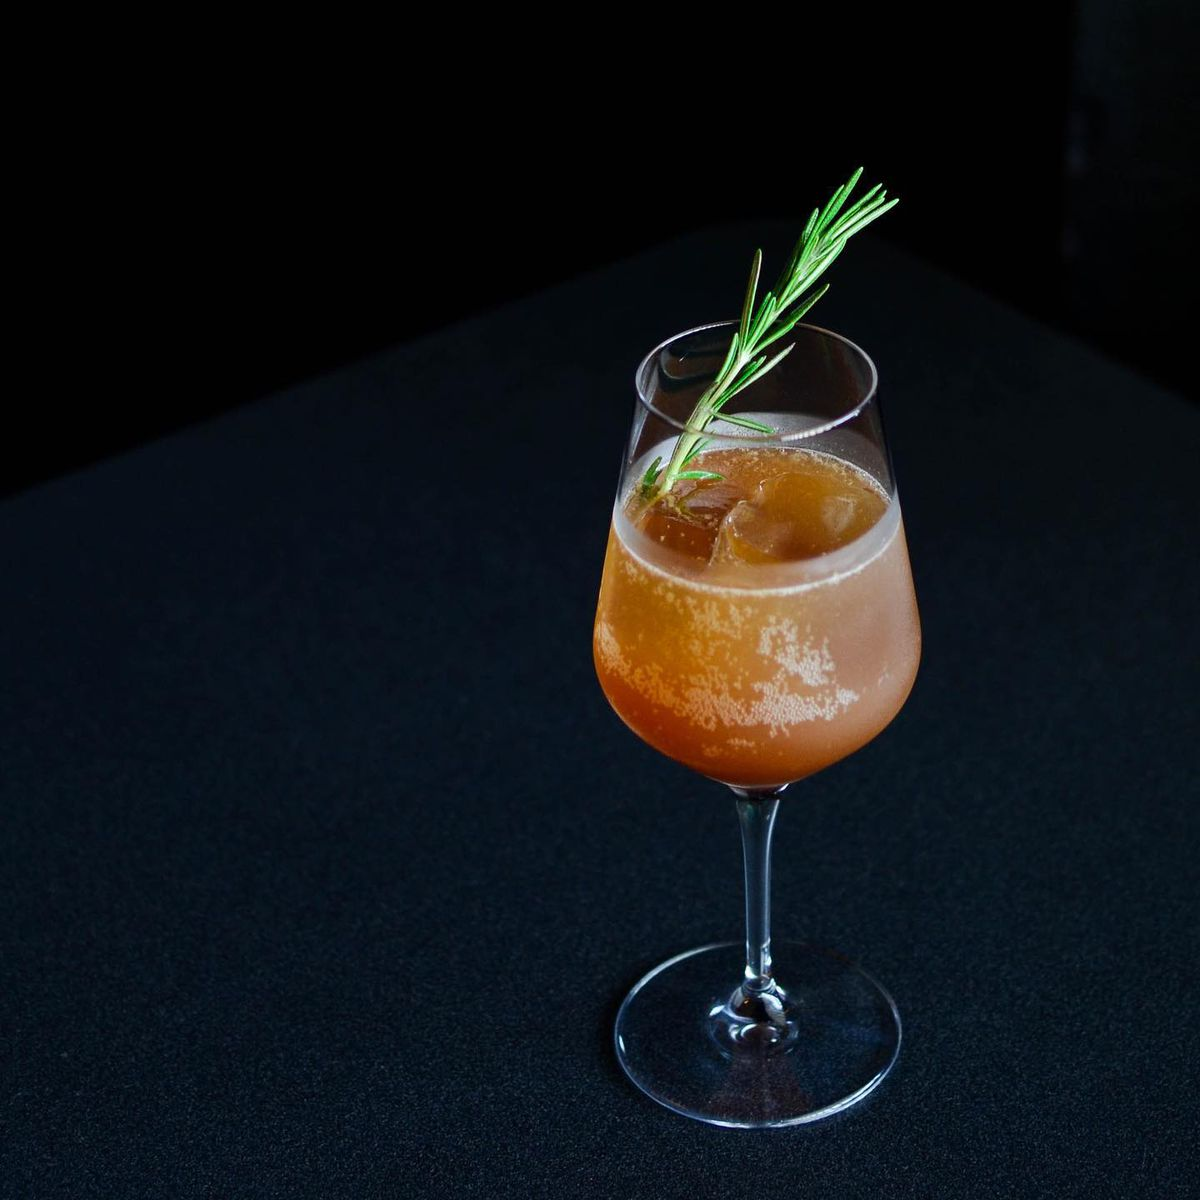 A chilled orange beverage over a big ice cub with a rosemary garnish in a wine glass on a black topped bar